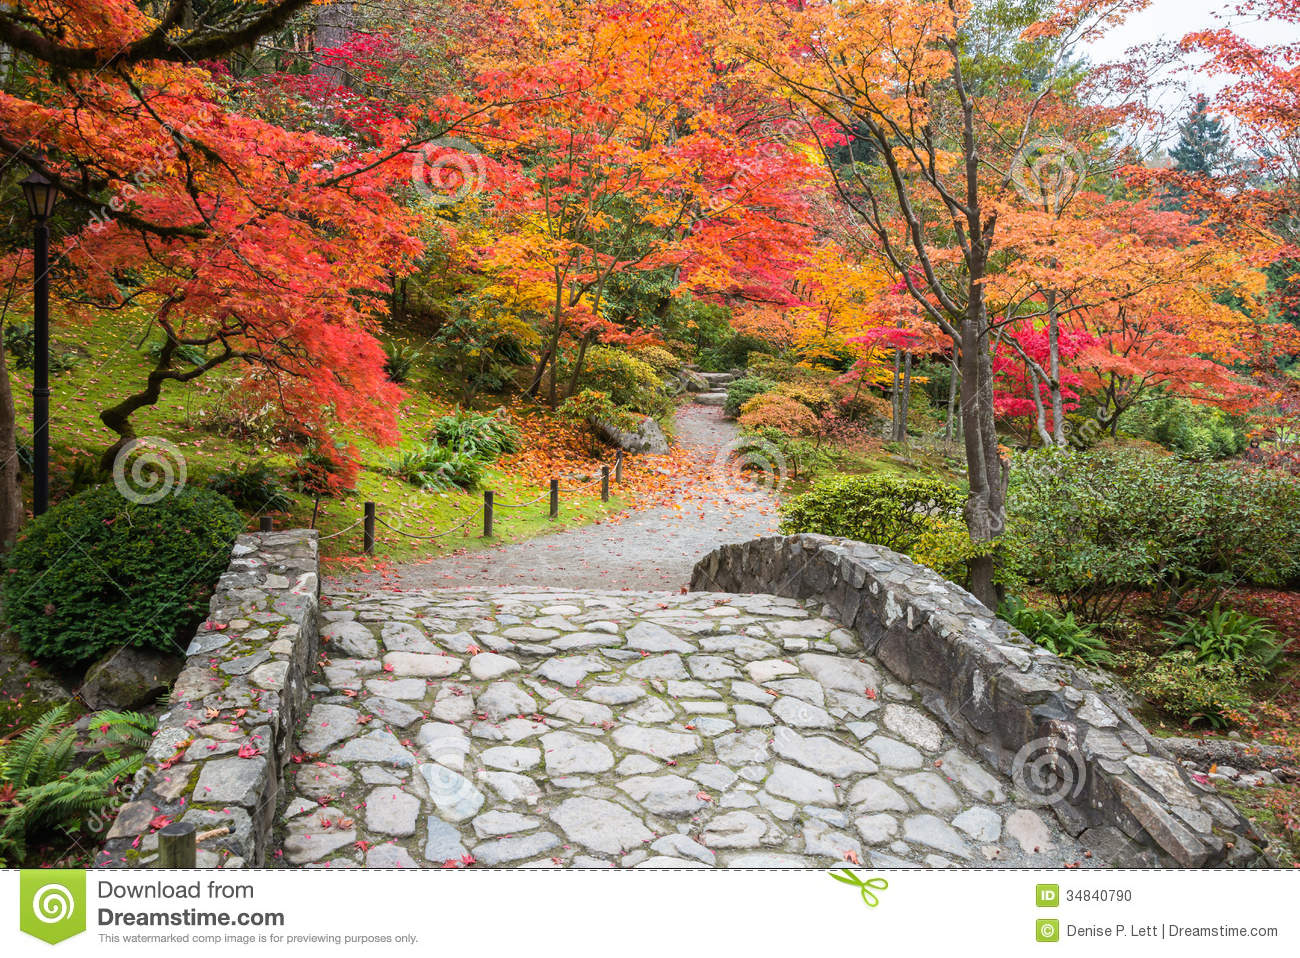 Fall color landscape with stone bridge and walking path stock photo image 34840790 - Gardening in fall ...